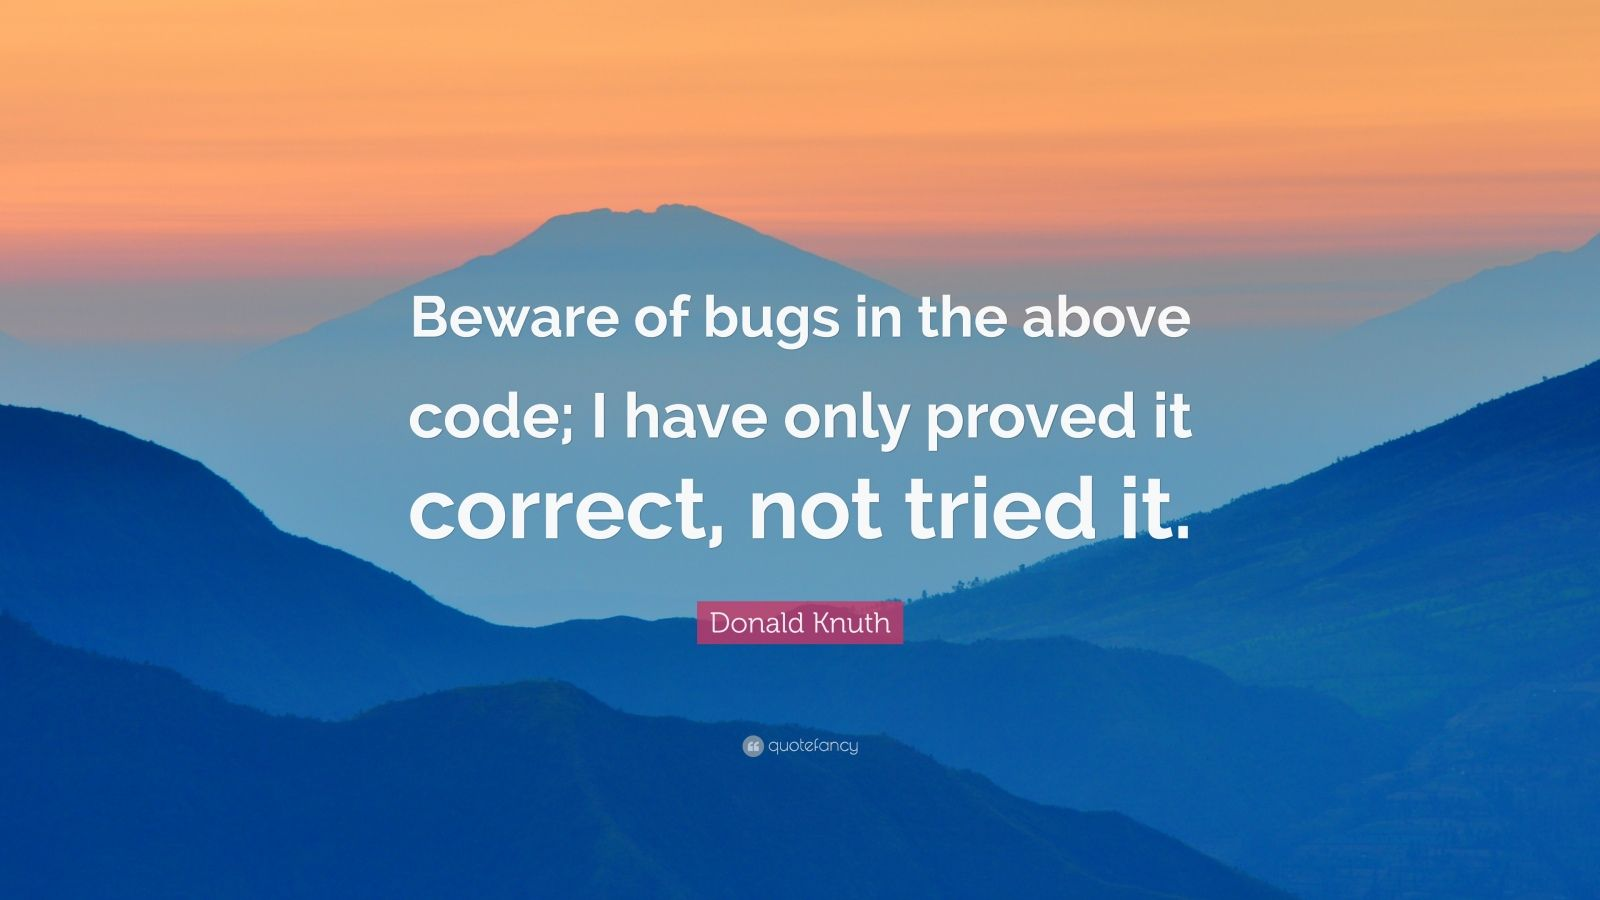 """Donald Knuth Quote: """"Beware of bugs in the above code; I have only proved it correct, not tried it."""""""